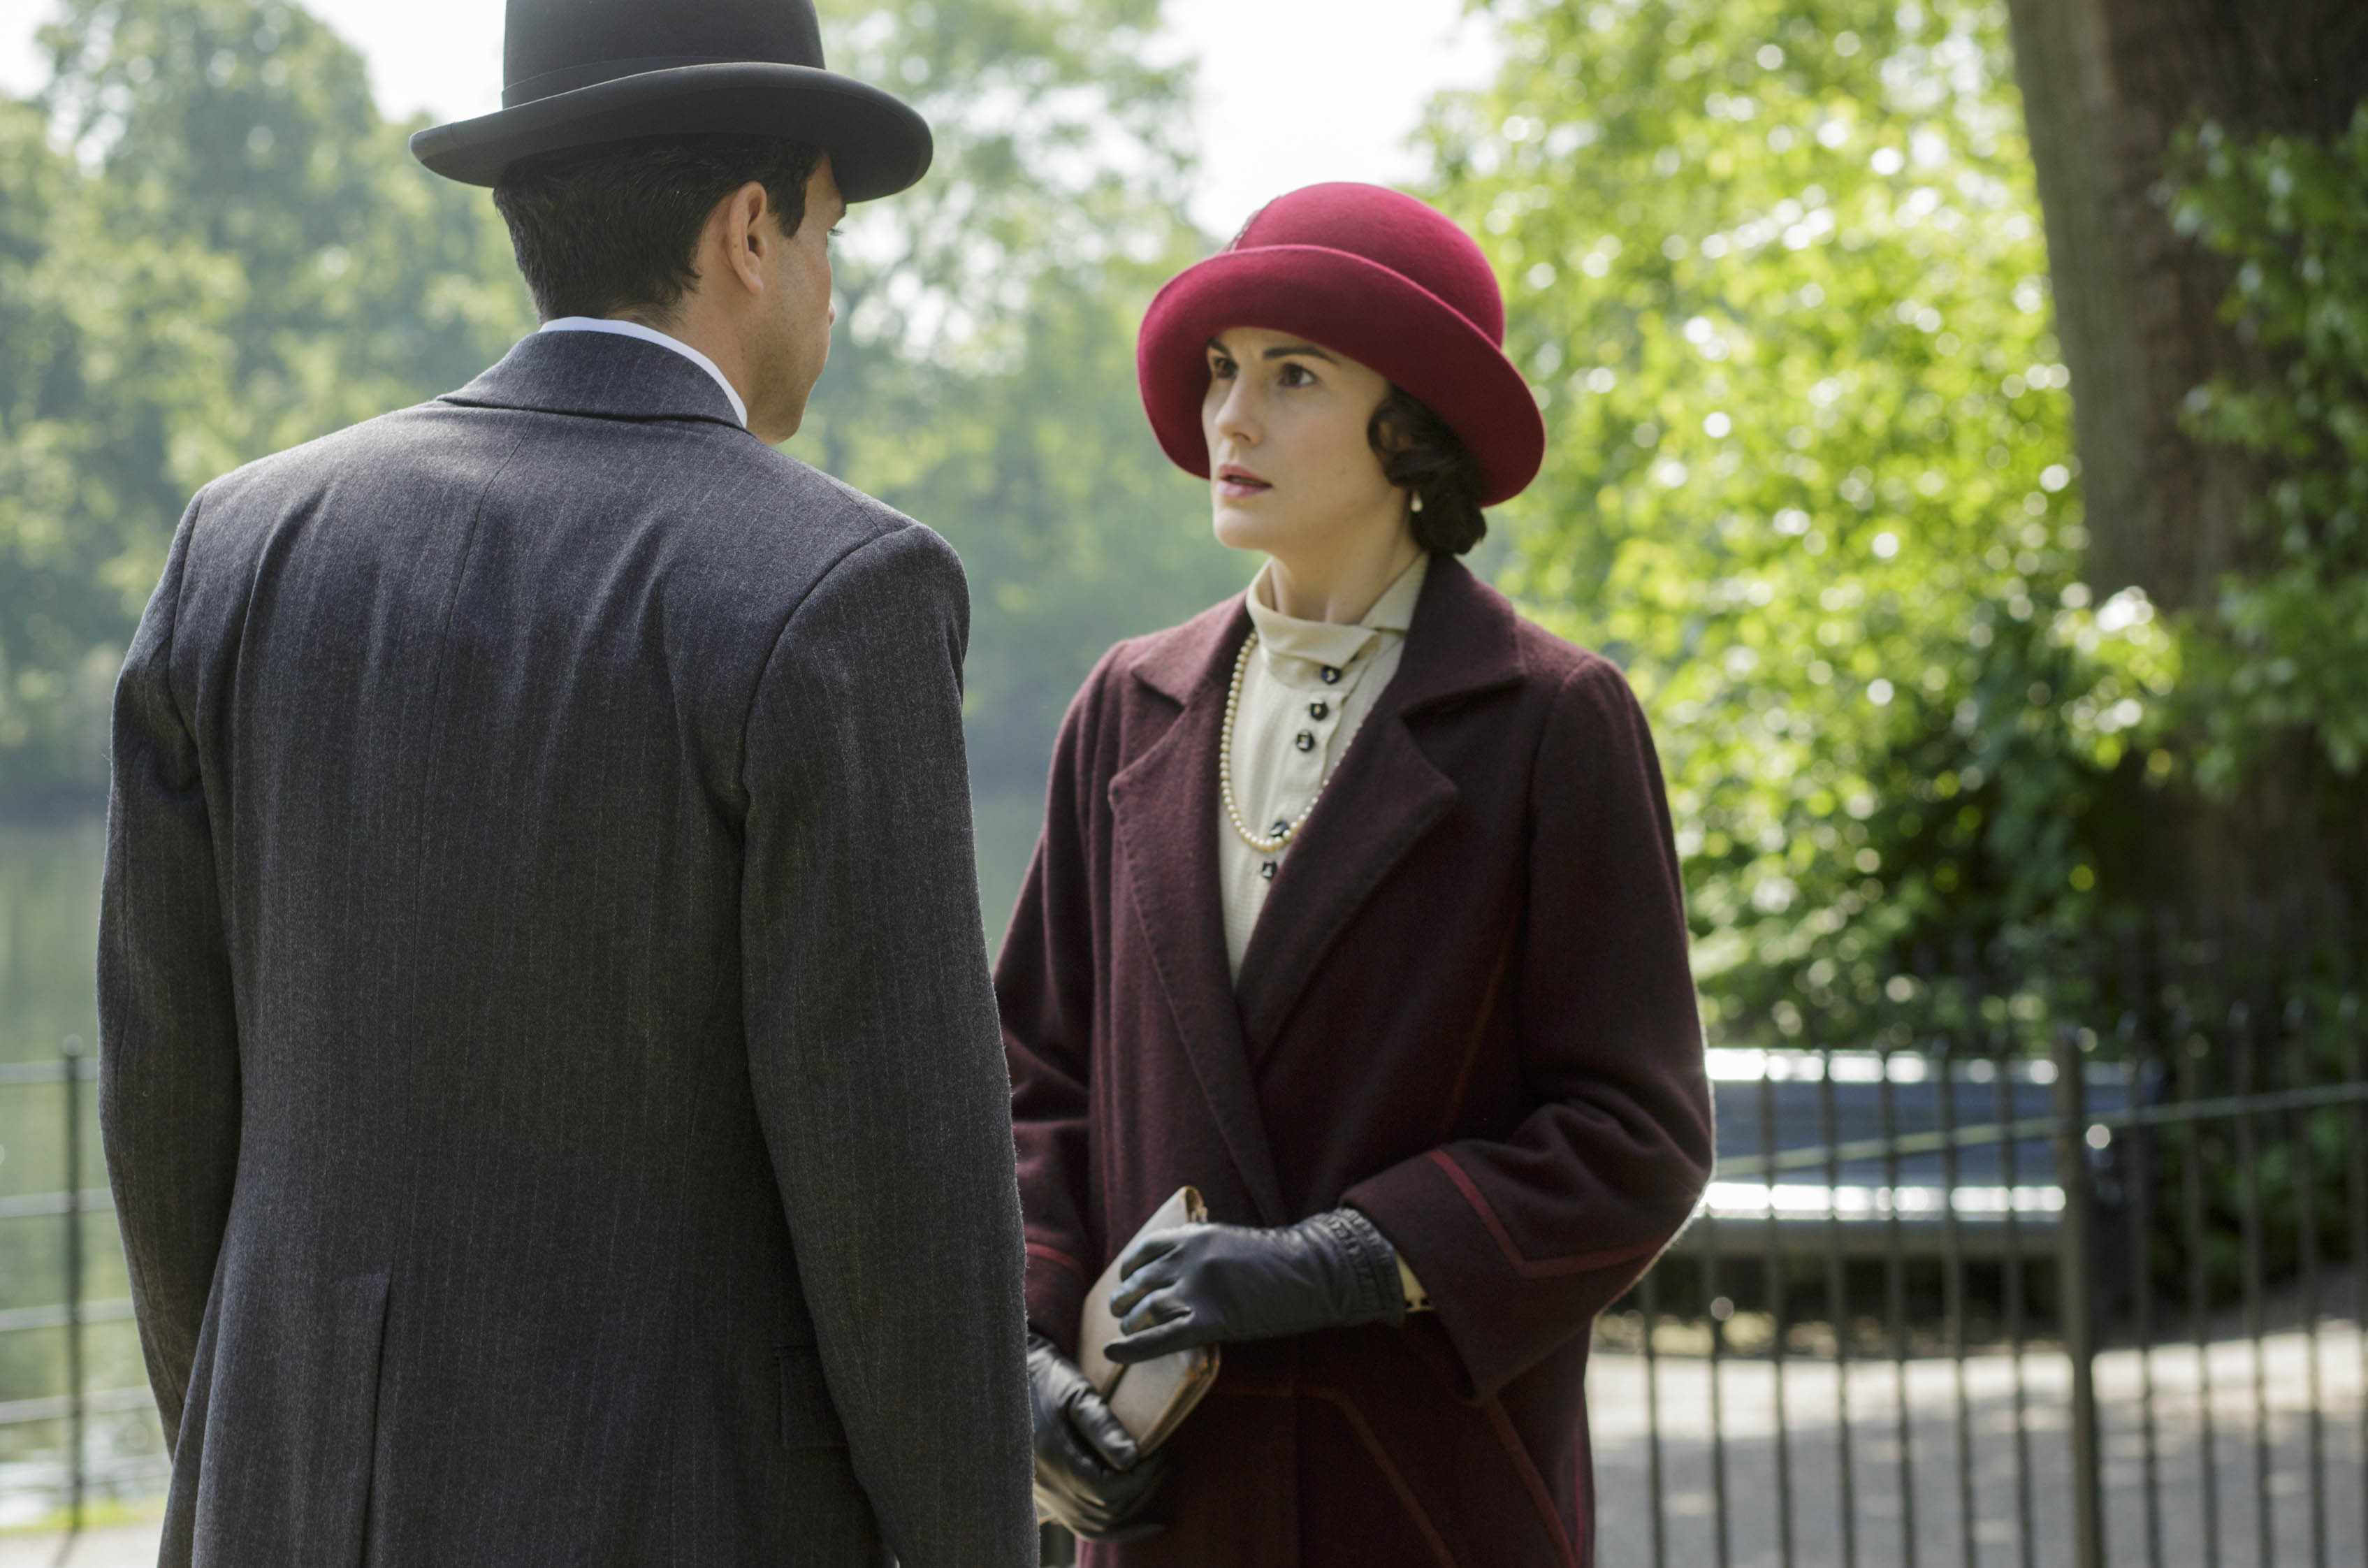 A proposal and a divorce in this week's 'Downton Abbey'.